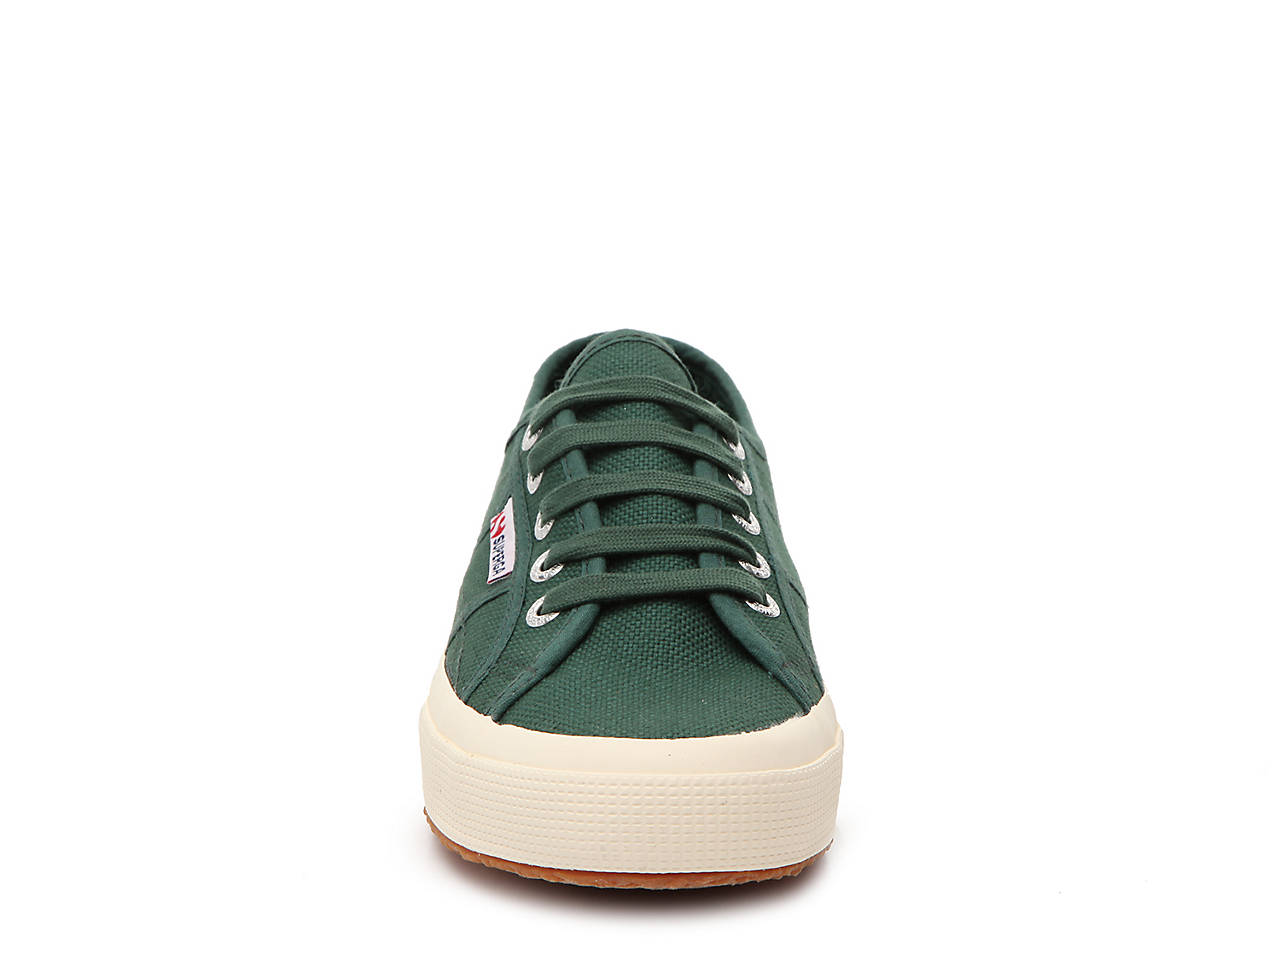 eea83ebc9738 Superga 2750 Cotu Classic Sneaker Women s Shoes